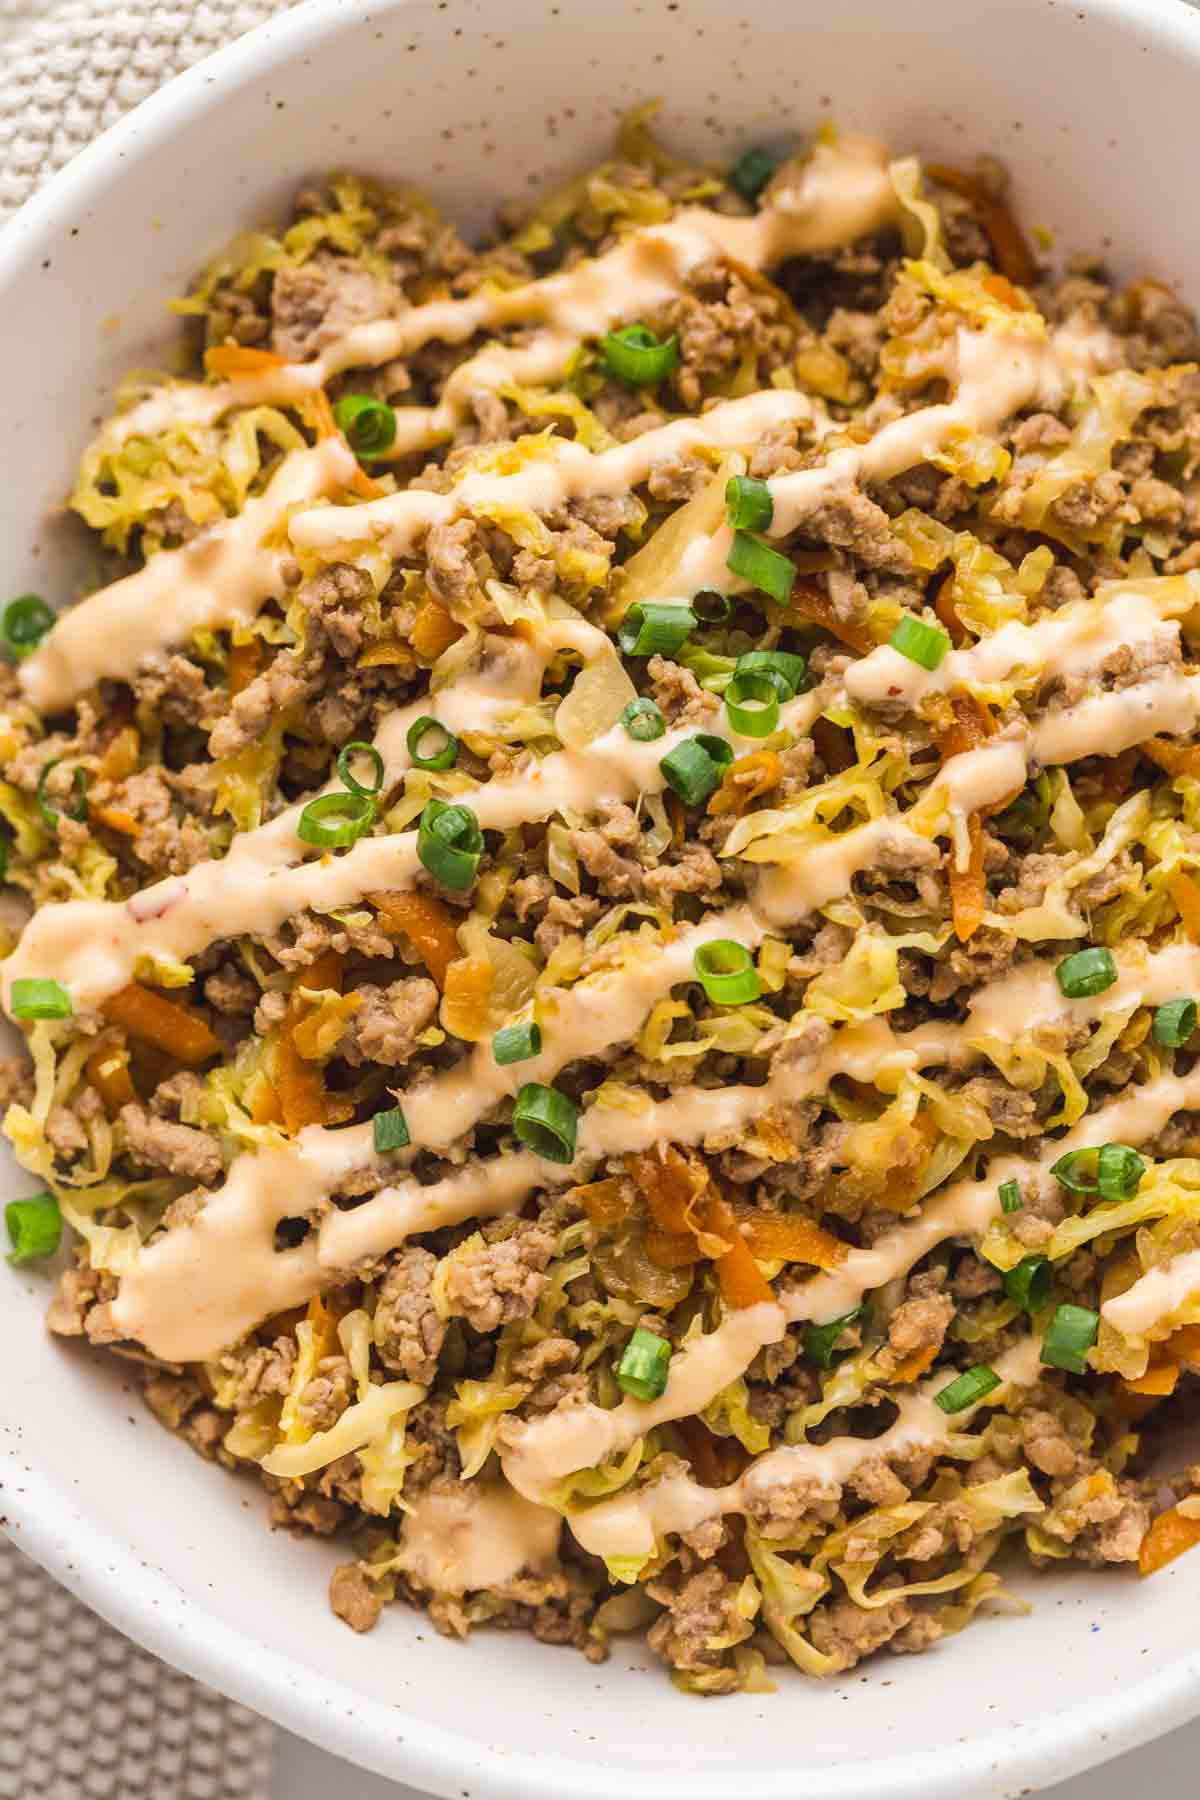 A close up of Egg Roll in a Bowl with creamy chili mayo drizzle